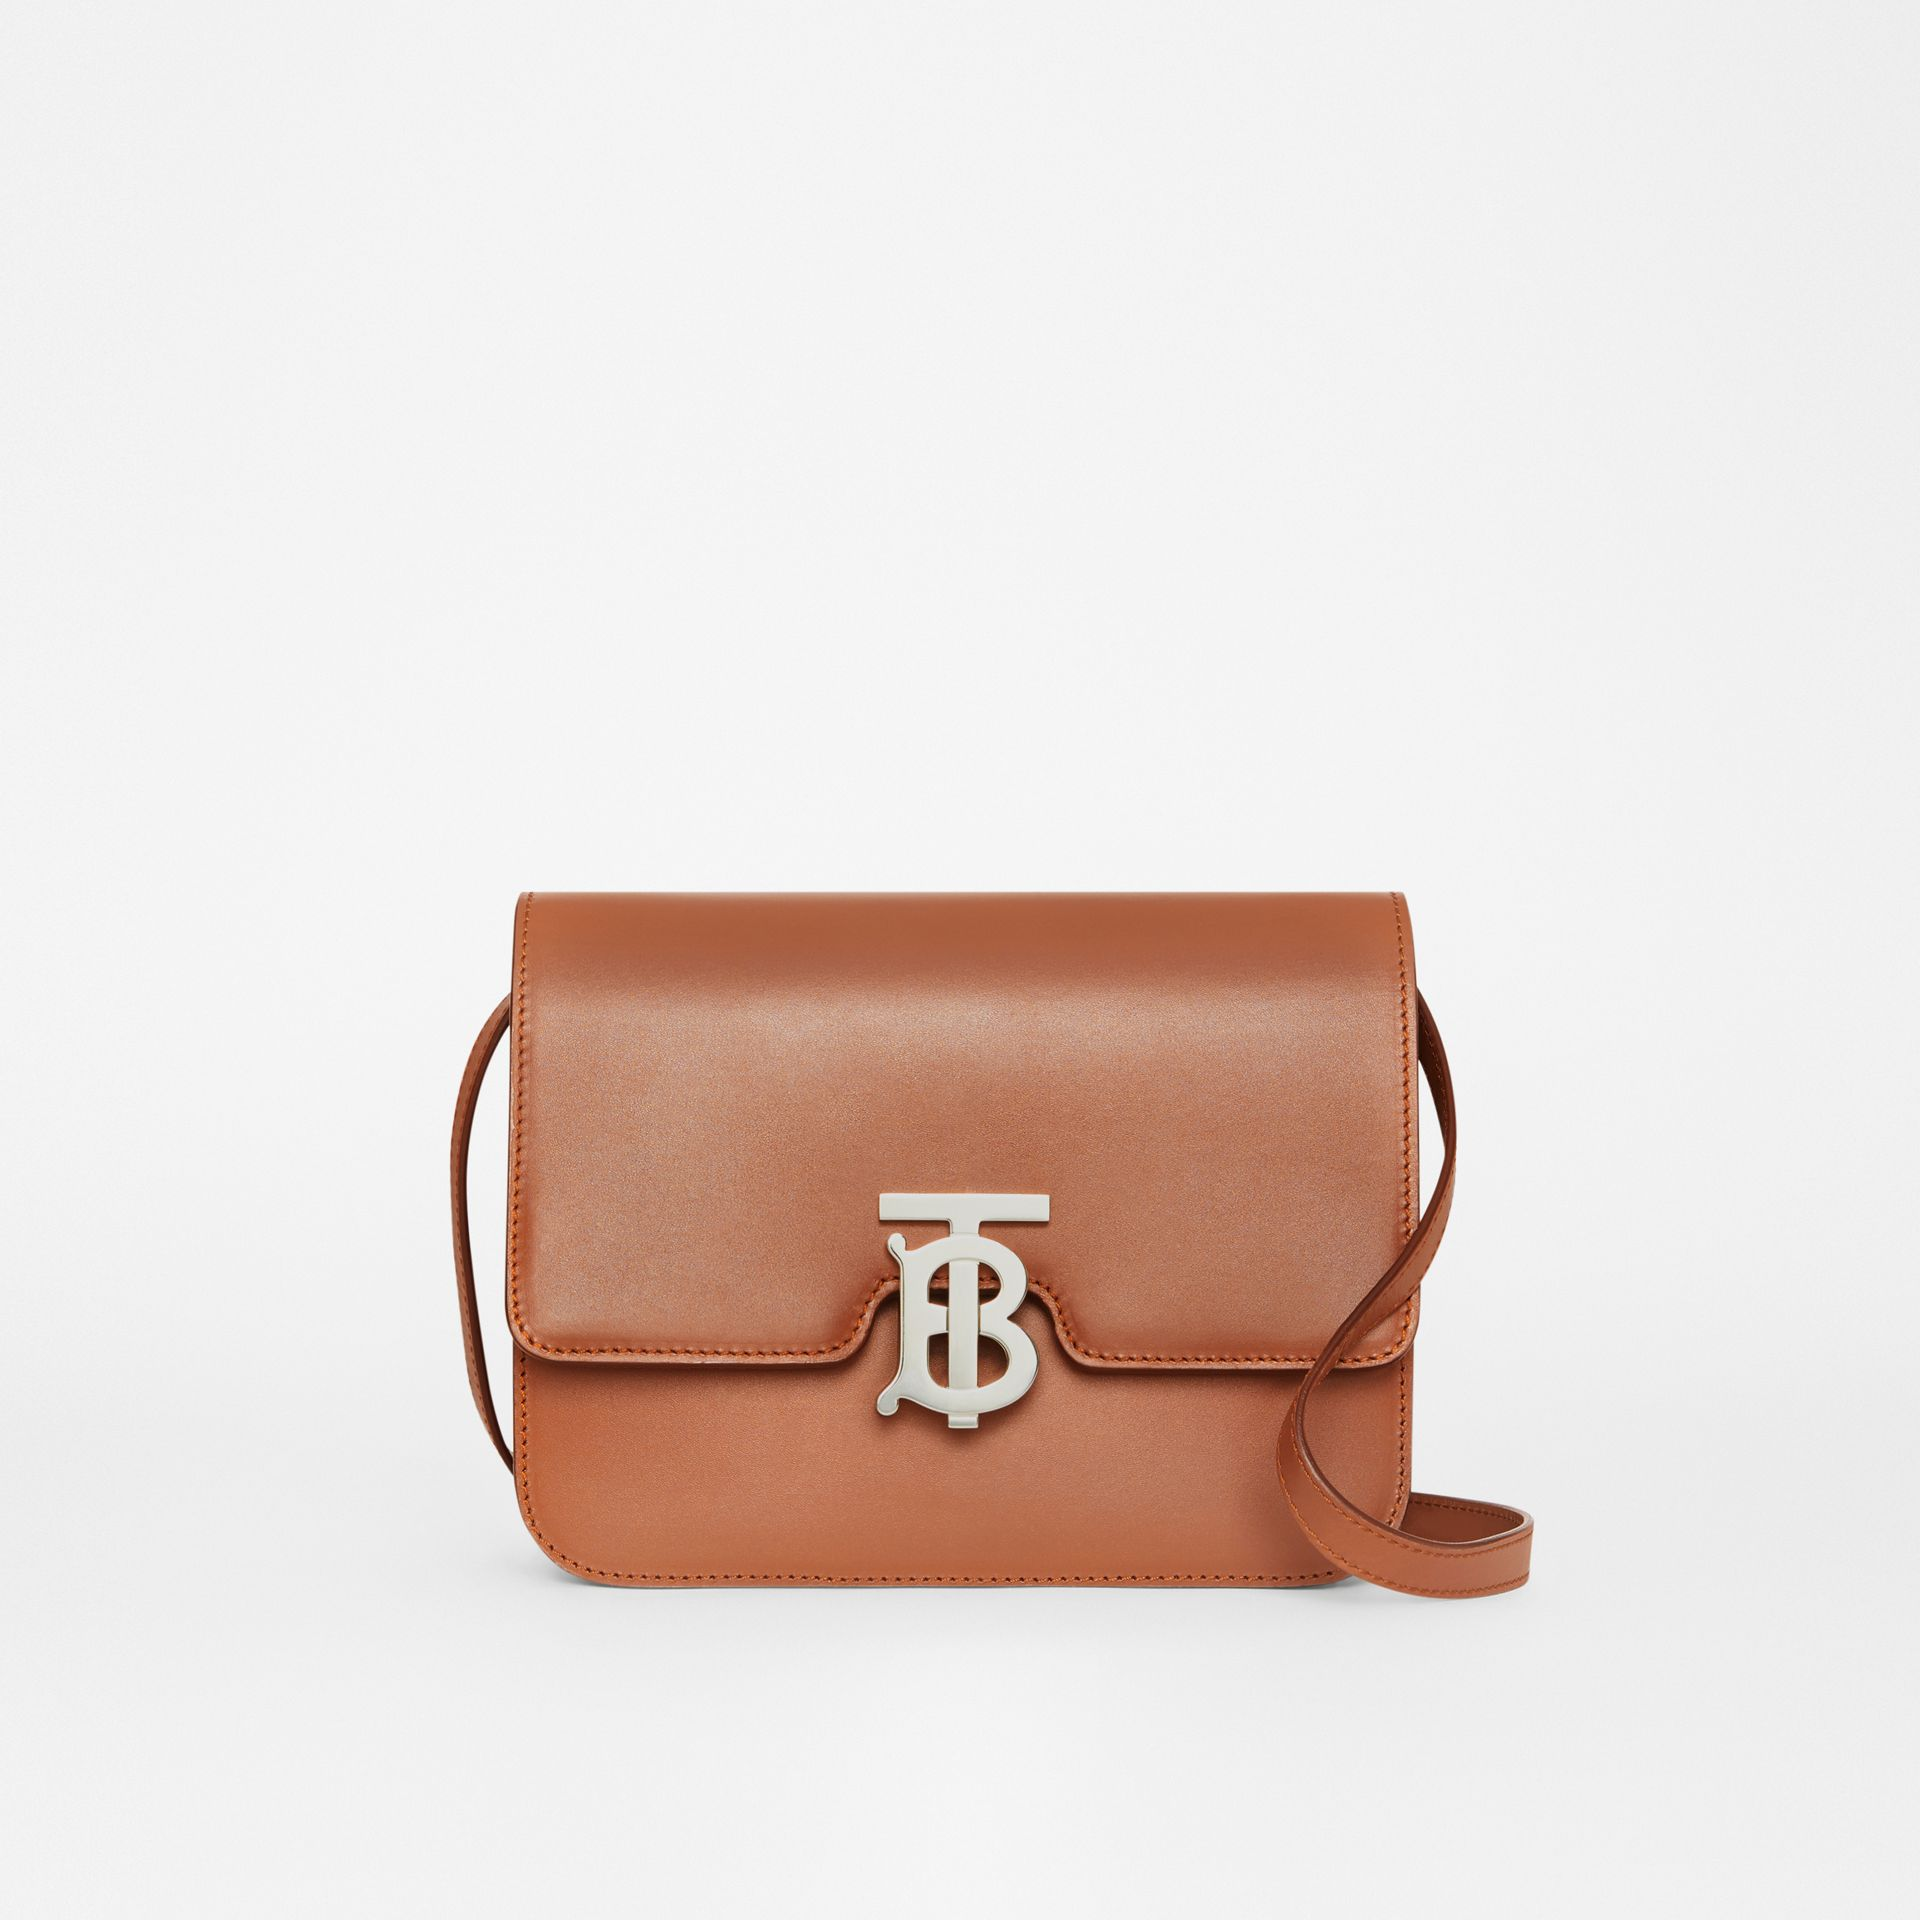 Small Leather TB Bag in Malt Brown - Women   Burberry - gallery image 0